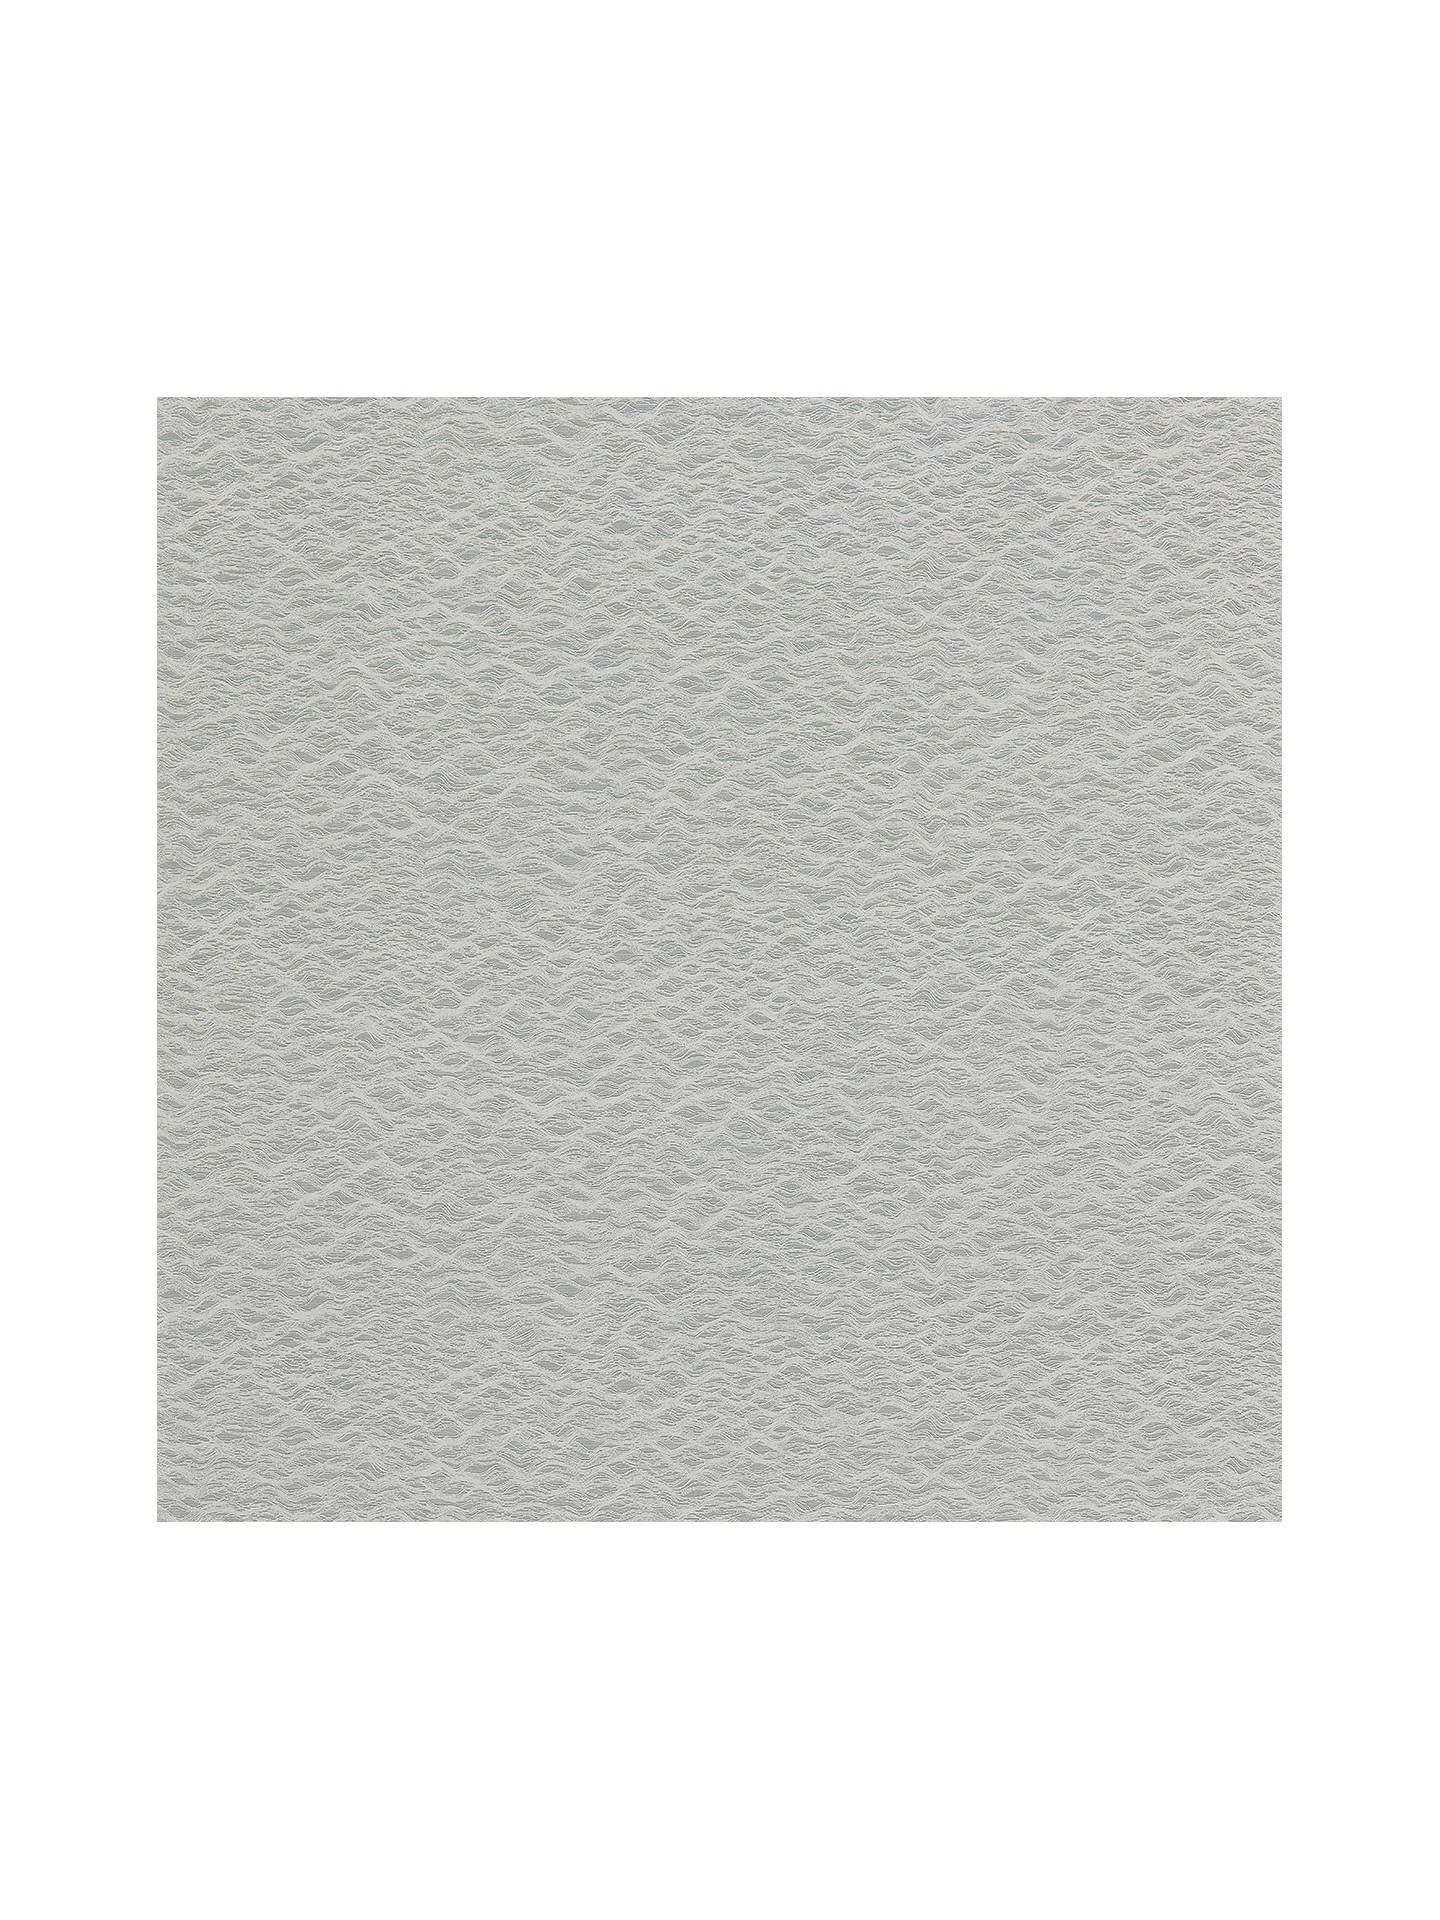 Buy Anthology Olon Wallpaper, Zinc 111341 Online at johnlewis.com